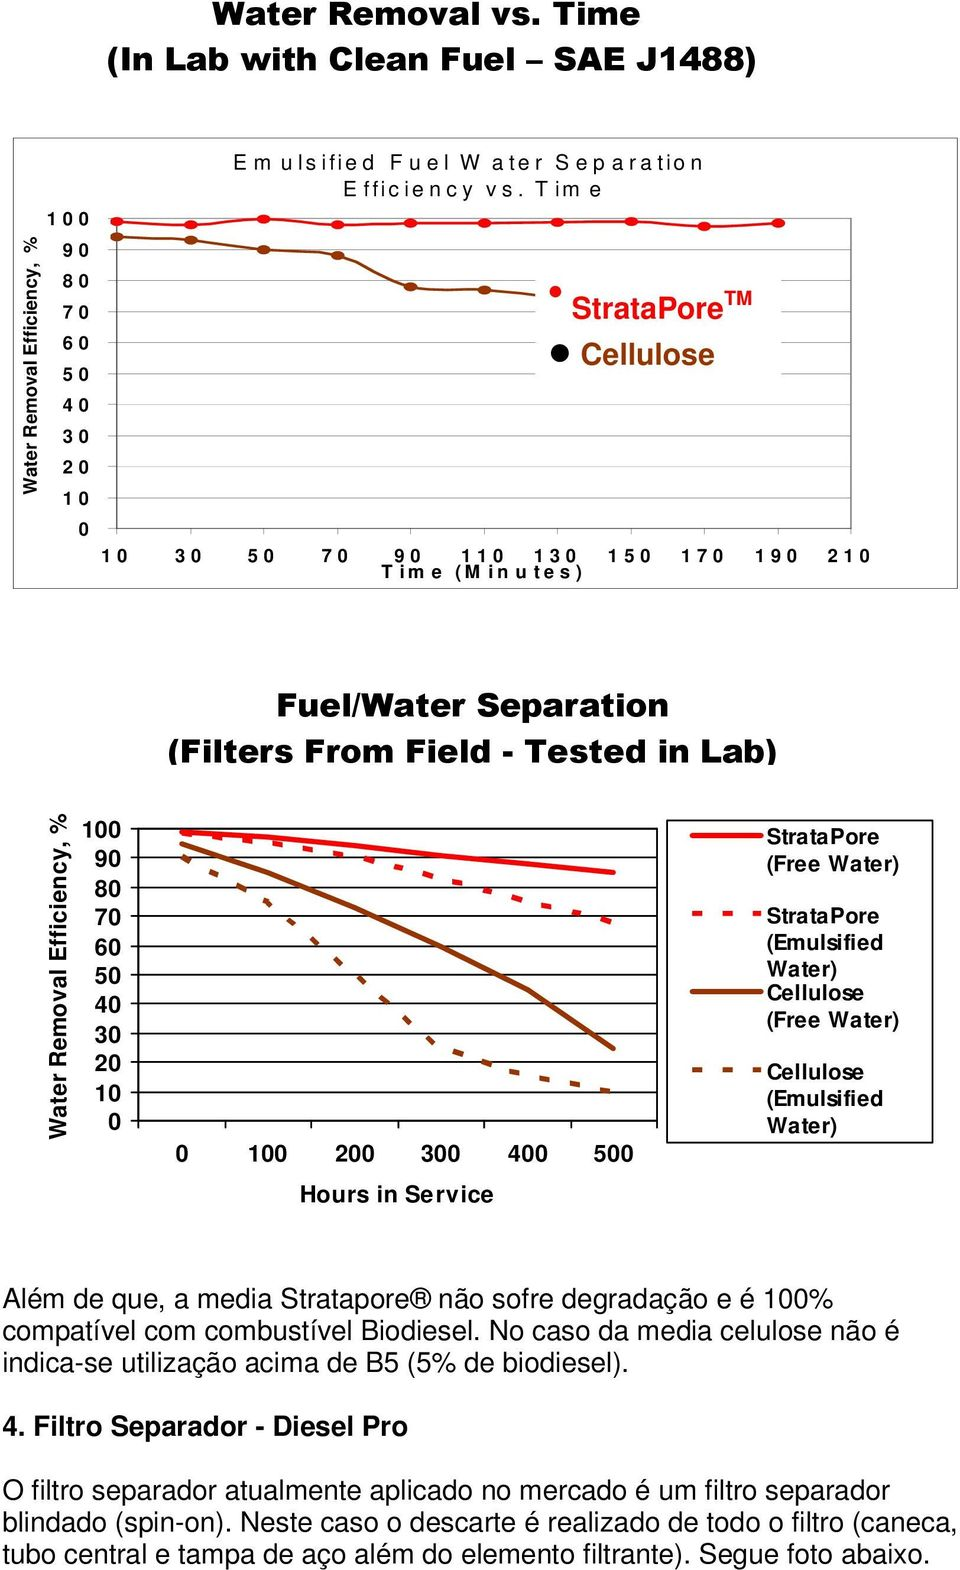 T im e StrataPore TM Cellulose 1 0 3 0 5 0 7 0 9 0 1 1 0 1 3 0 1 5 0 1 7 0 1 9 0 2 1 0 T i m e ( M i n u t e s ) Fuel/Water Separation (Filters From Field - Tested in Lab) Water Removal Efficiency, %